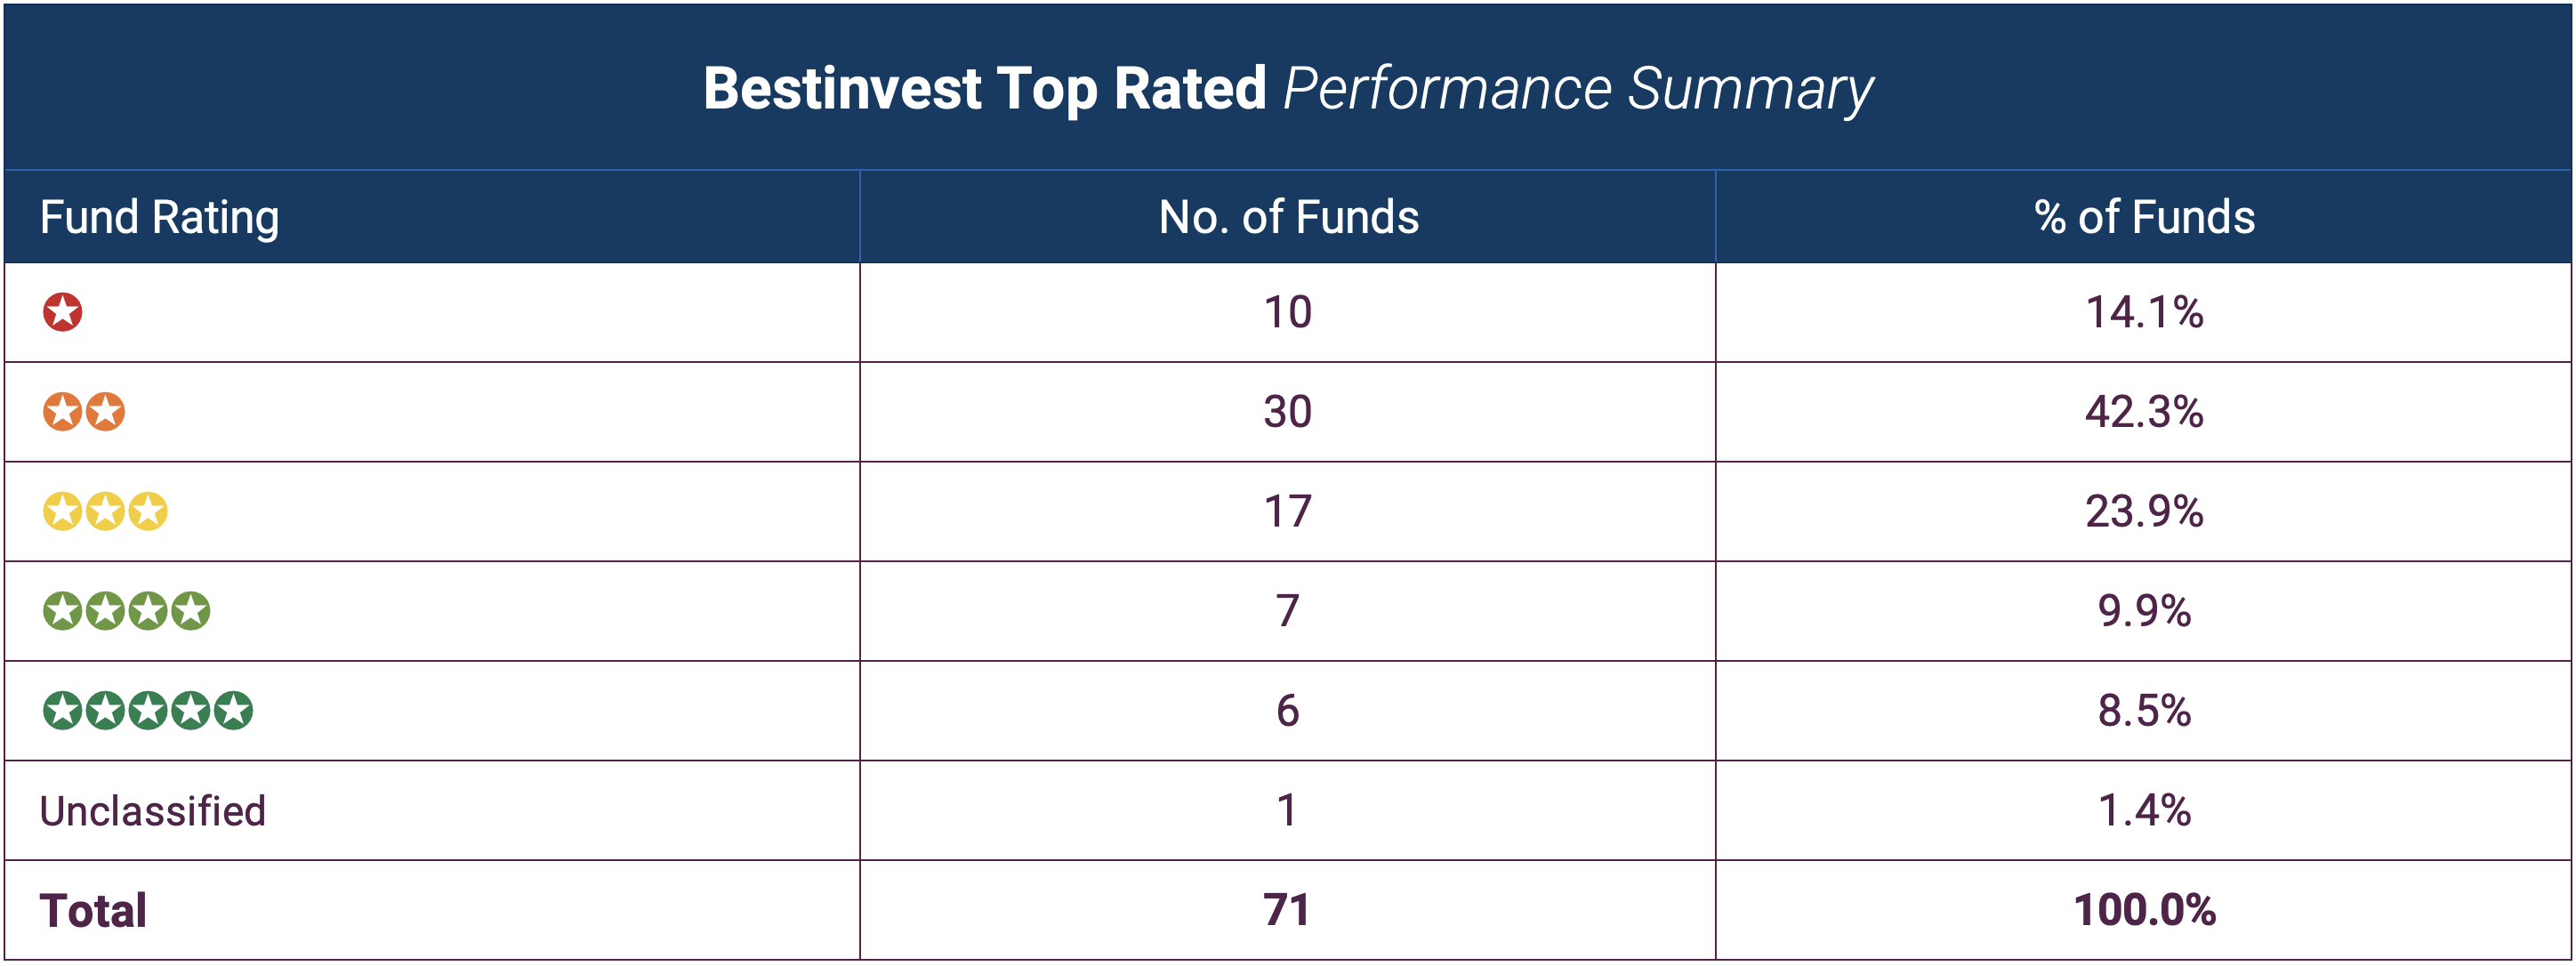 Bestinvest Top Rated Performance Summary